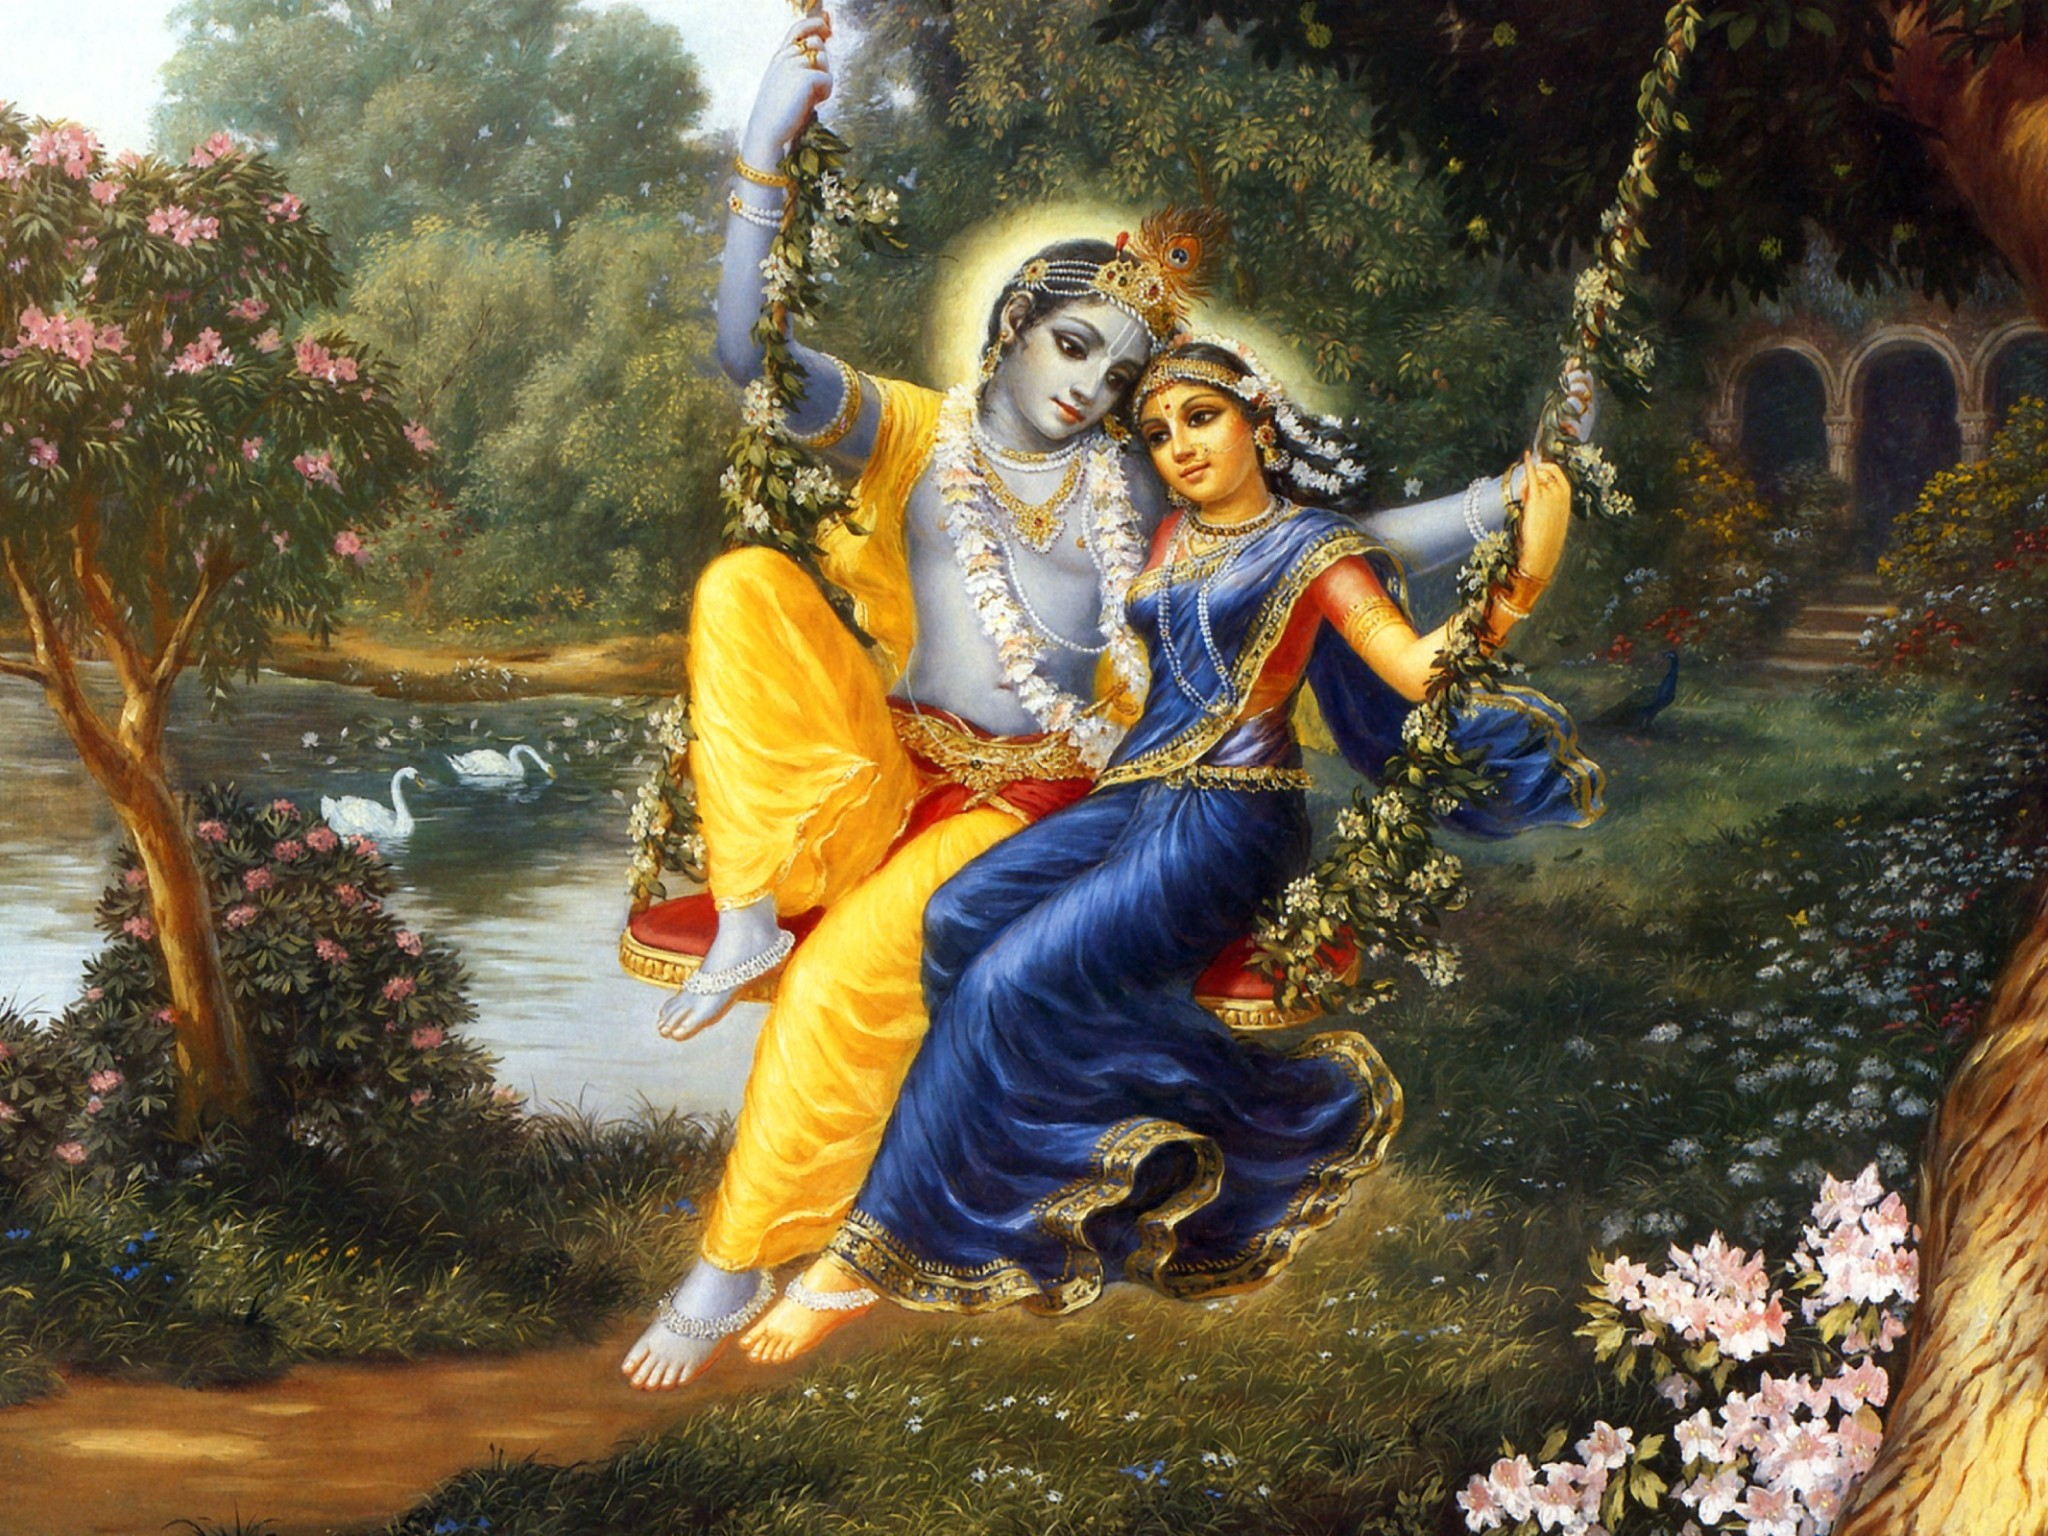 radha krishna wallpaper: desktop hd wallpaper - download free image